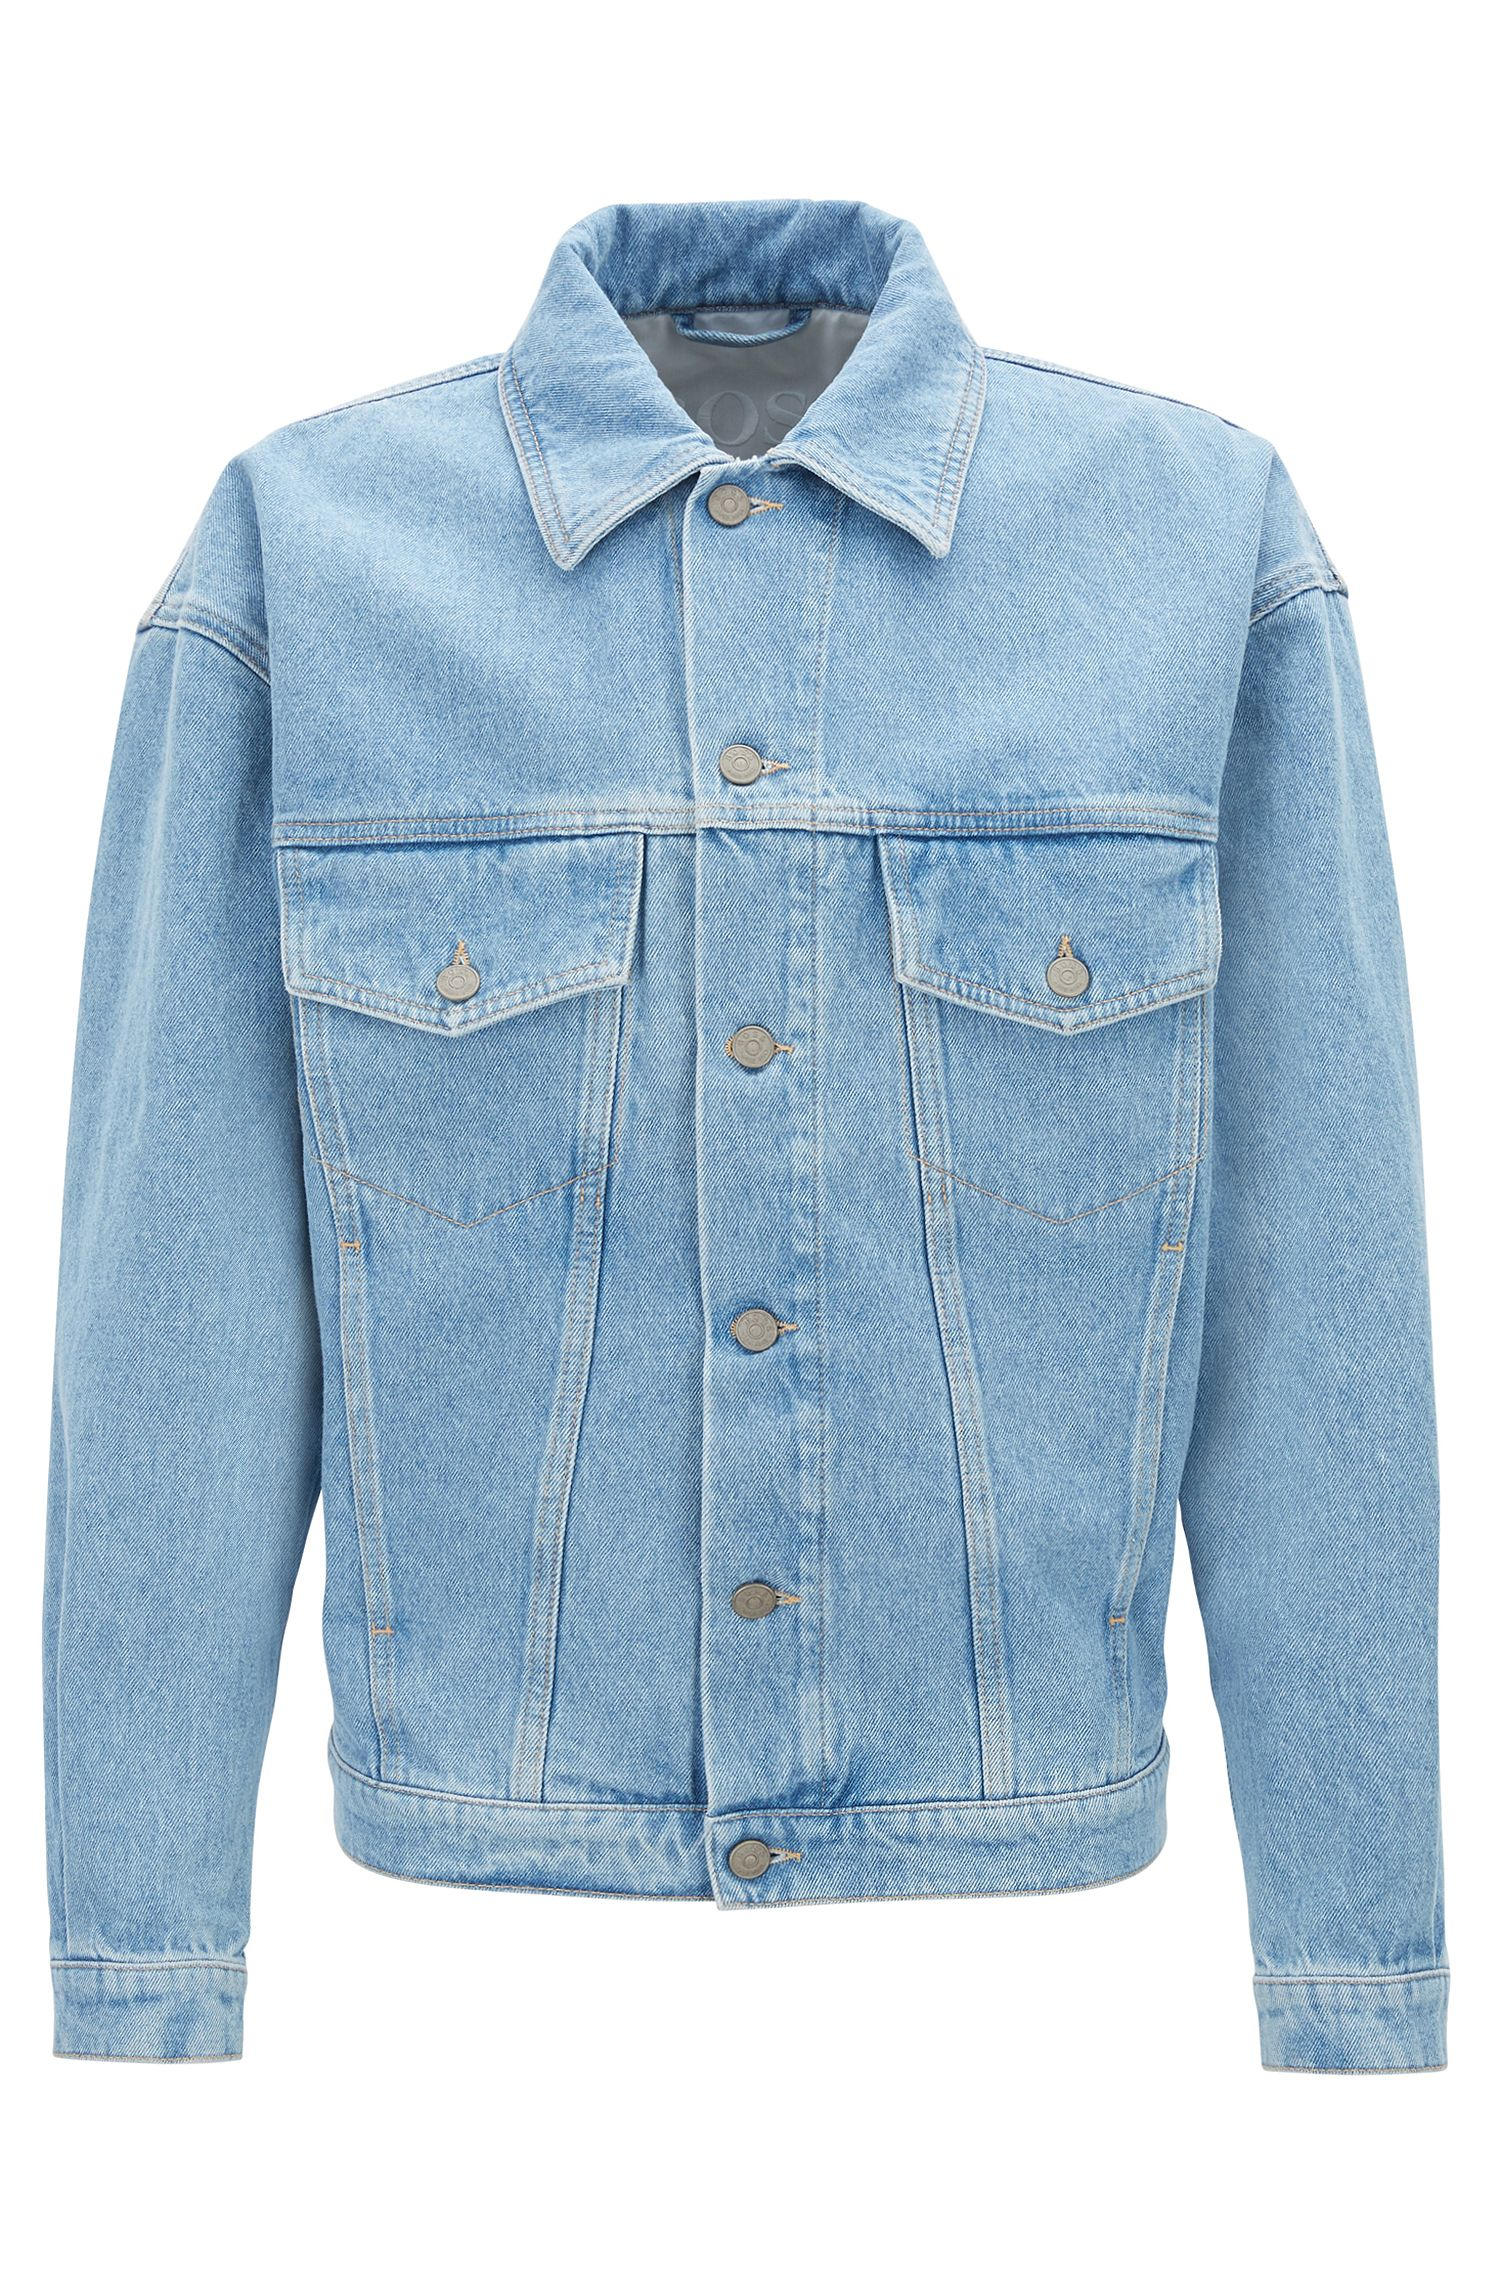 Veste Relaxed Fit en denim rigide bleu clair, Bleu